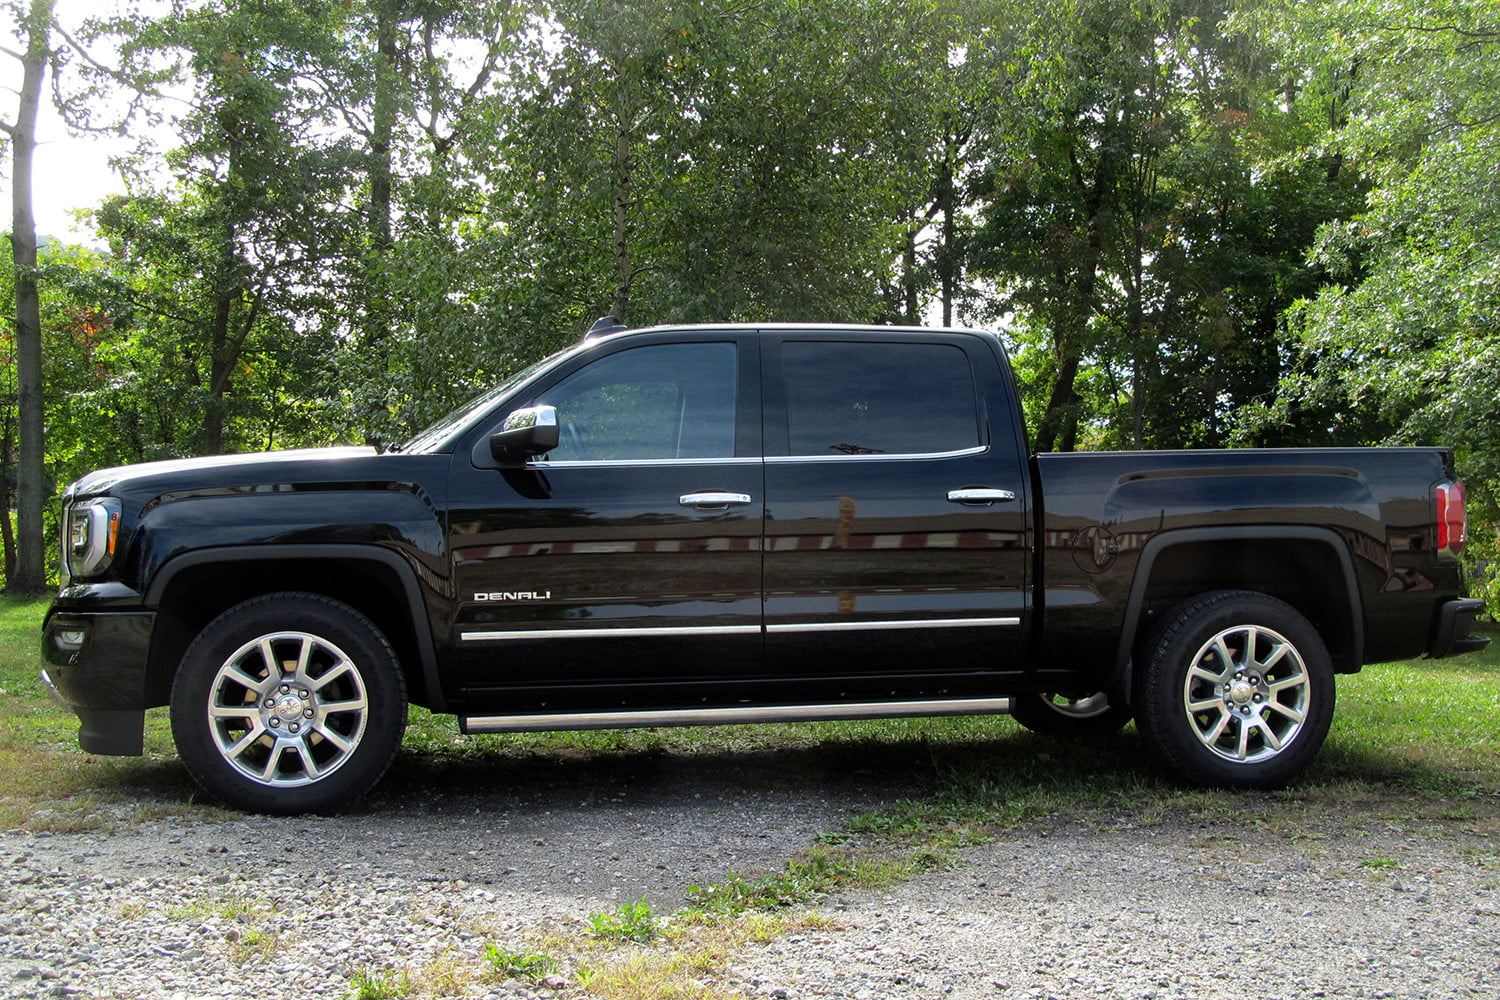 2016 gmc sierra 1500 denali first drive review digital. Black Bedroom Furniture Sets. Home Design Ideas